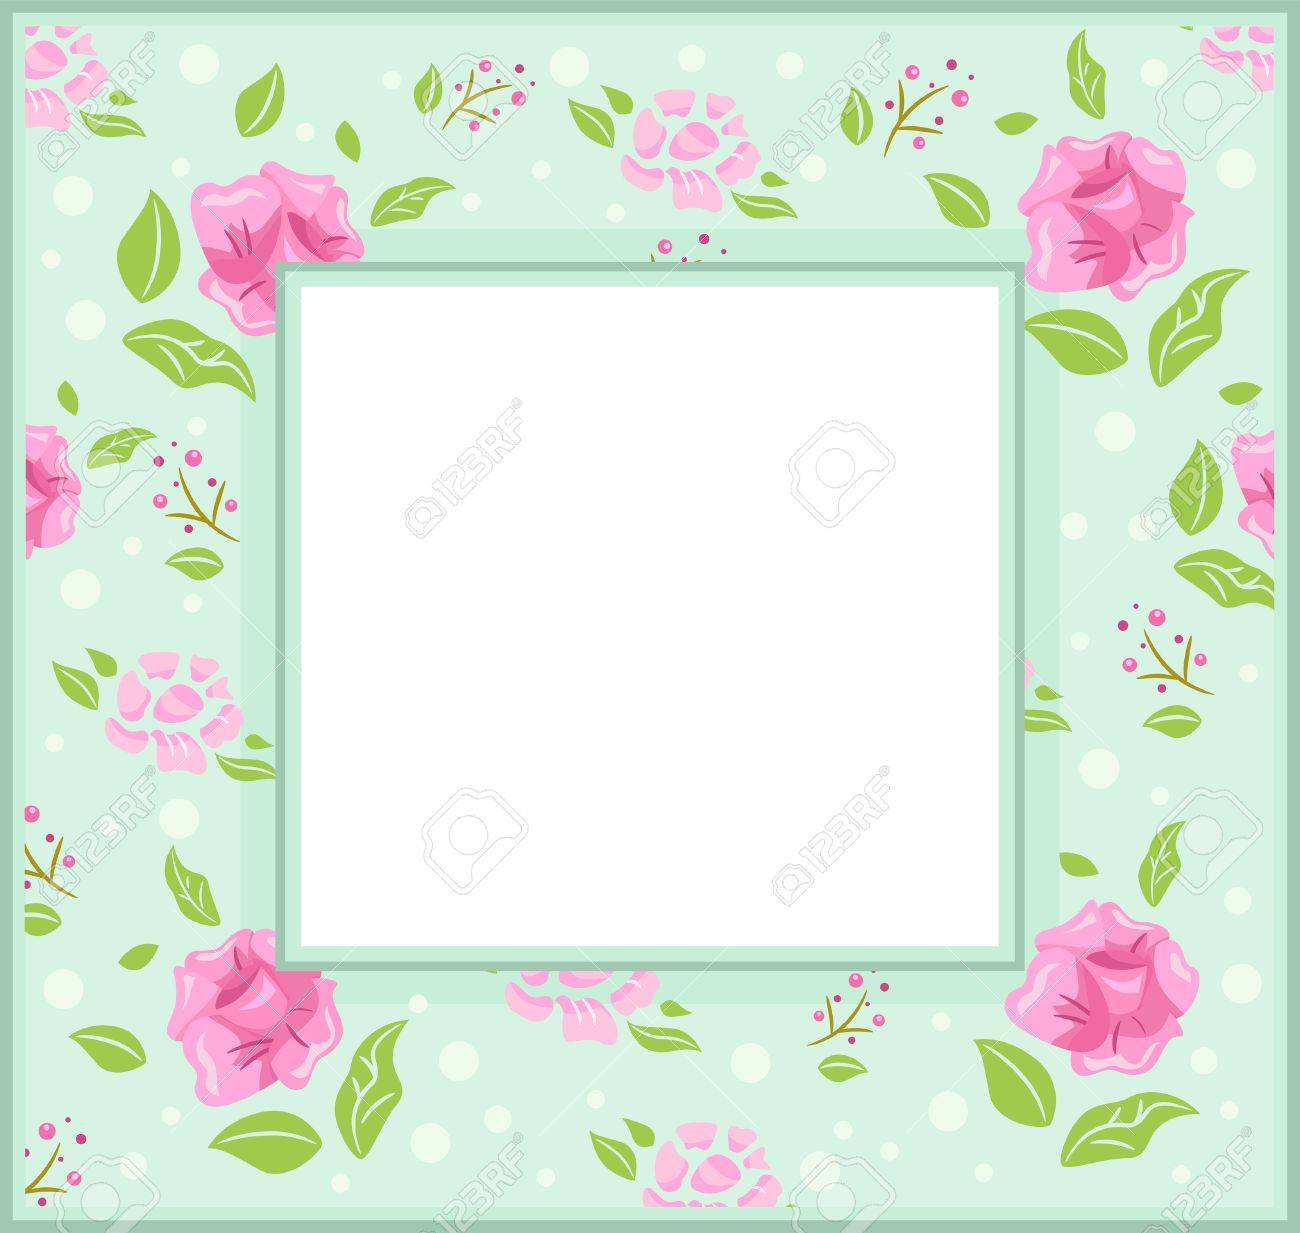 Frame Illustration With A Shabby Chic Theme Stock Vector